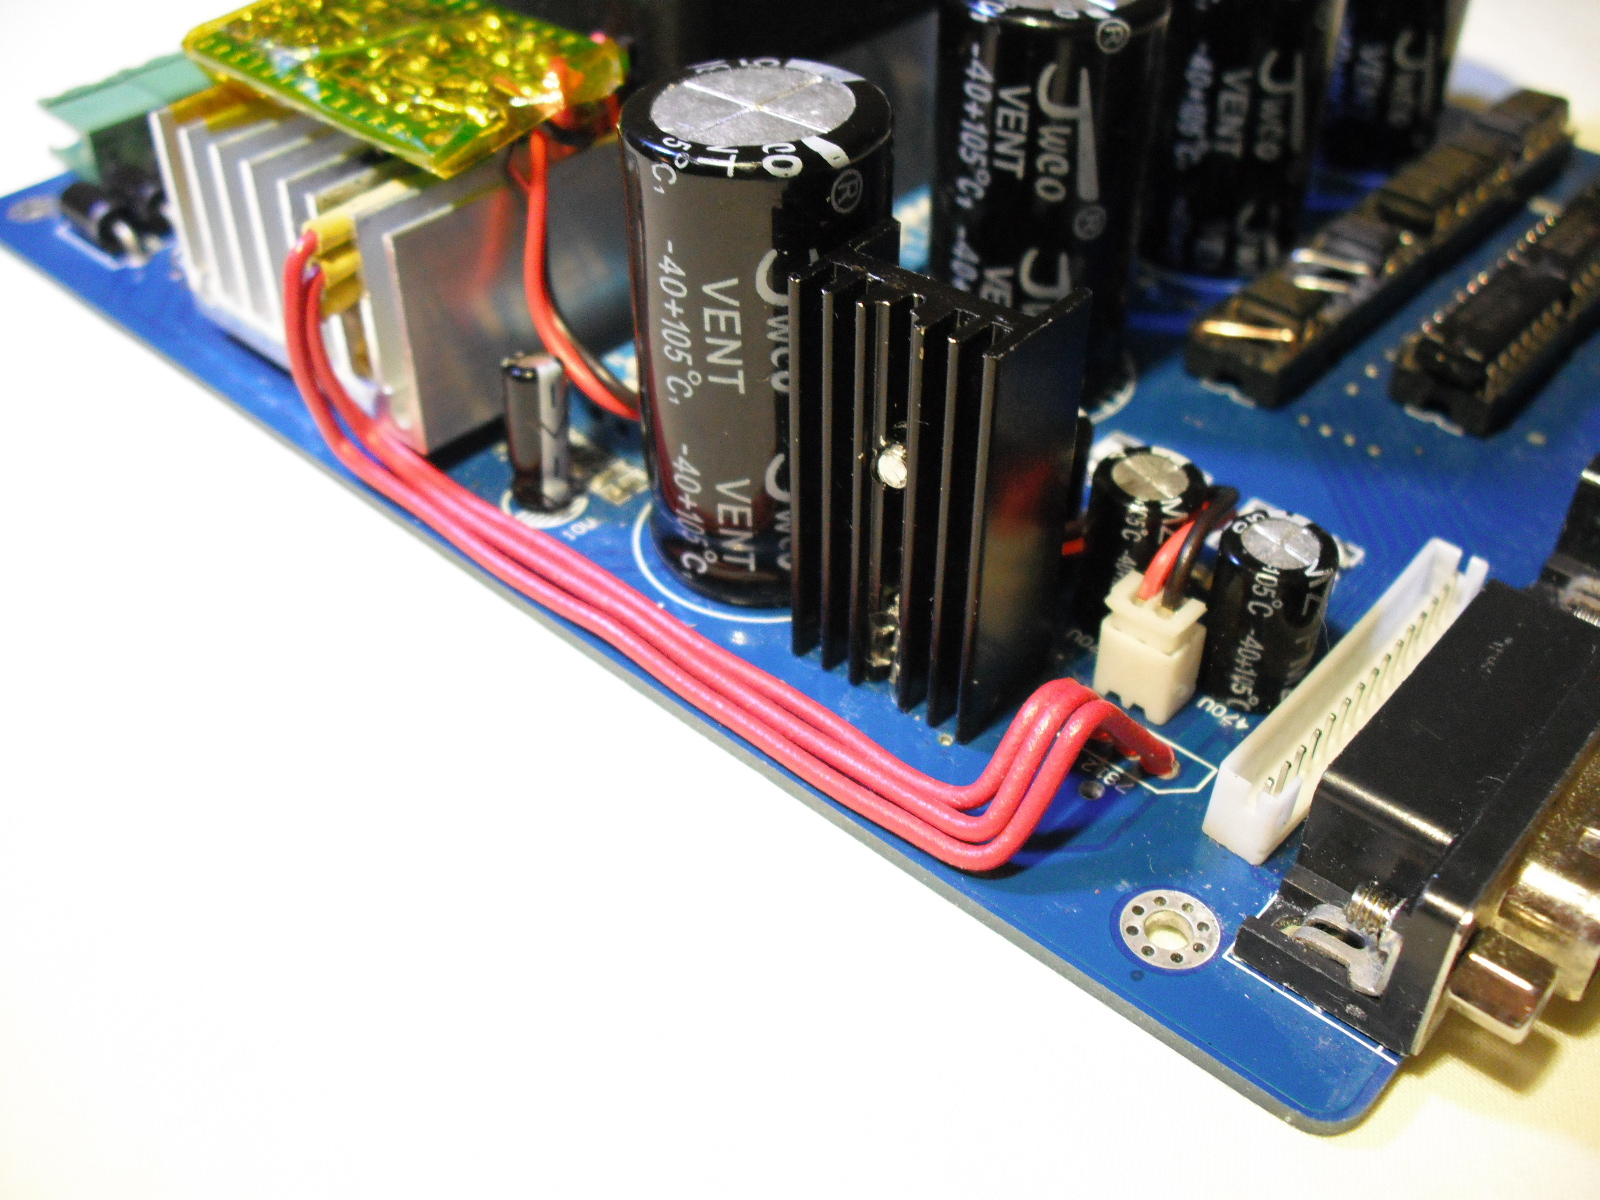 English Electronic Tips Hints The Resistor Is On Left Side Of Board Close To Heat Sink 7812 Was Moved From Its Original Position Be Inserted In Between Two Fins